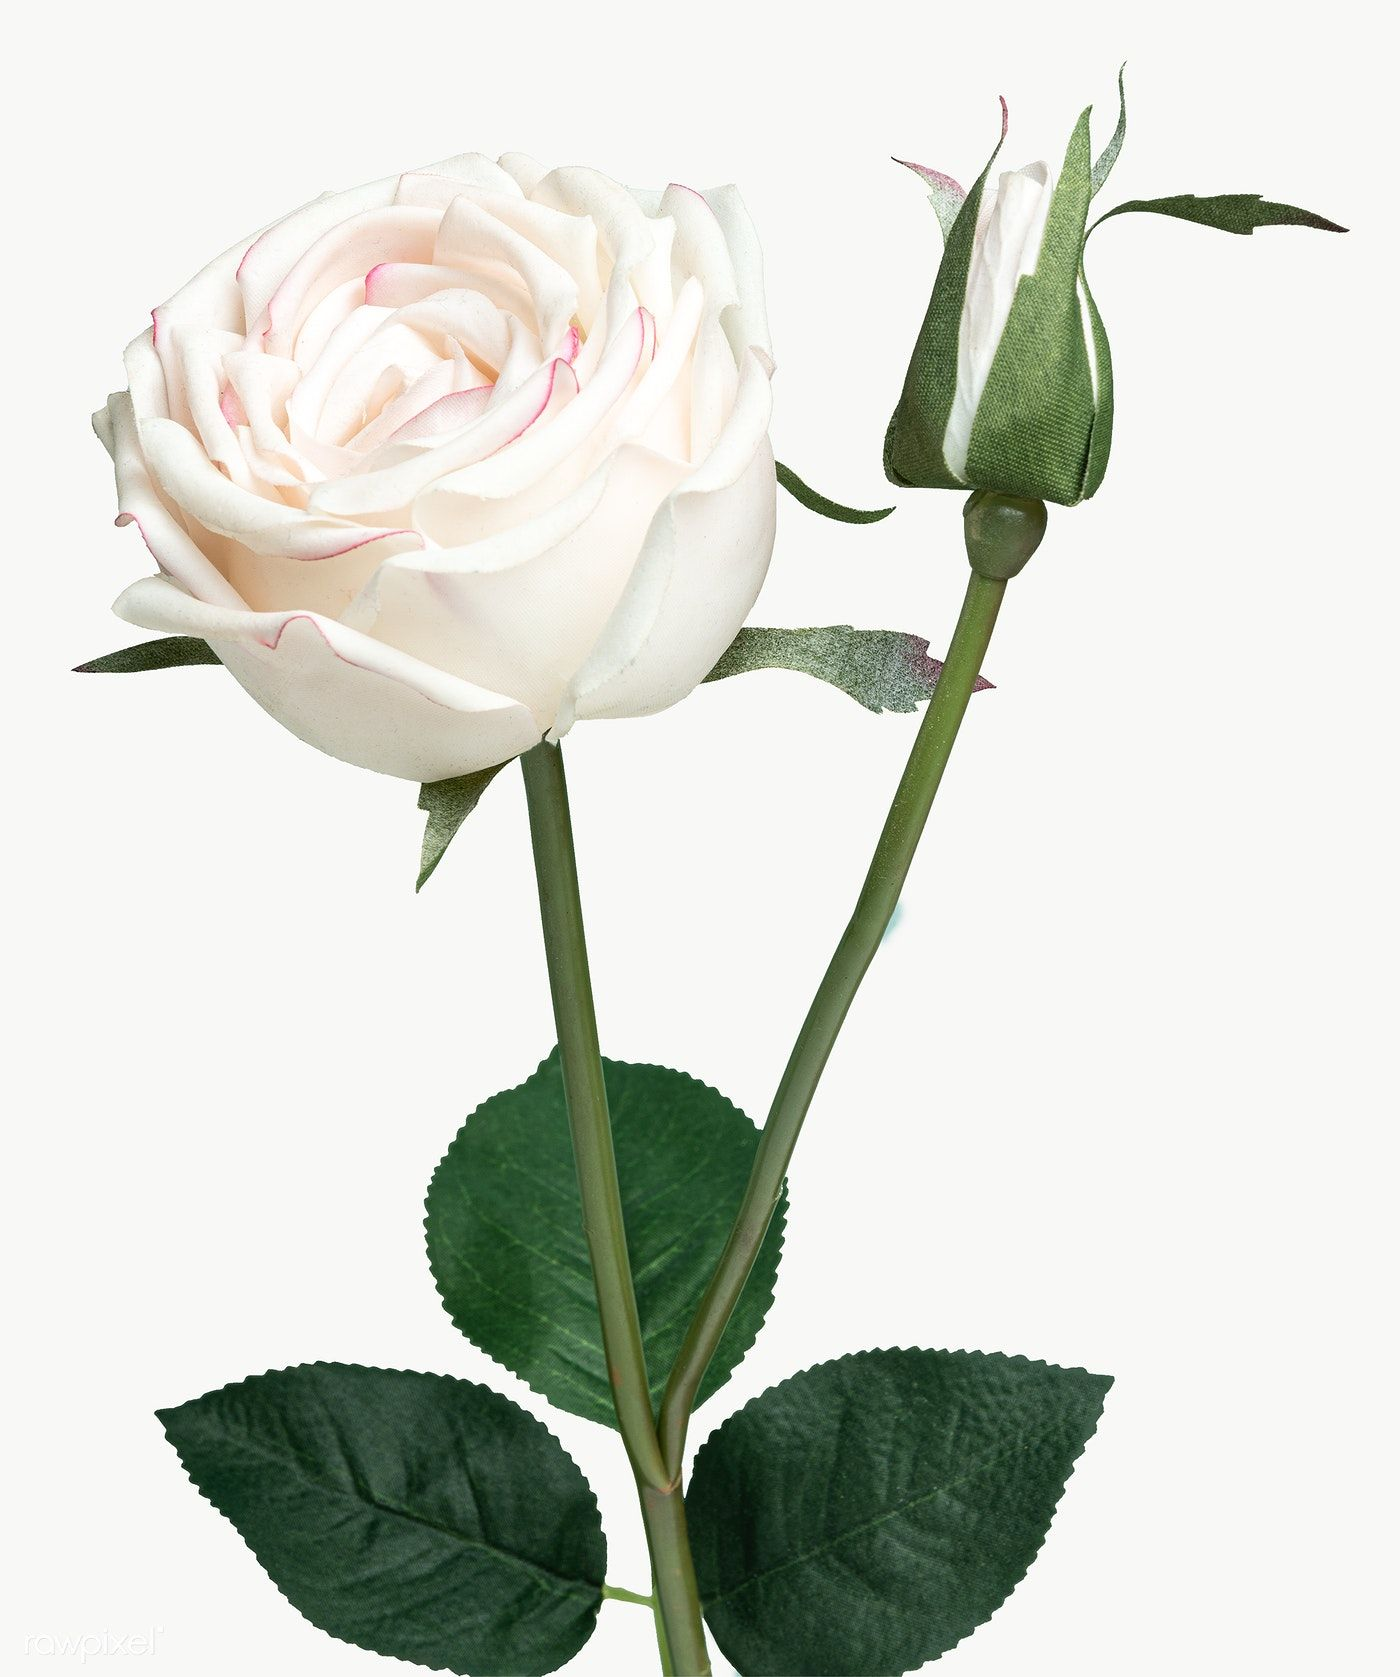 Download Premium Png Of White Rose Flower Transparent Png 2278243 White Rose Flower White Lily Flower Rose Flower Png